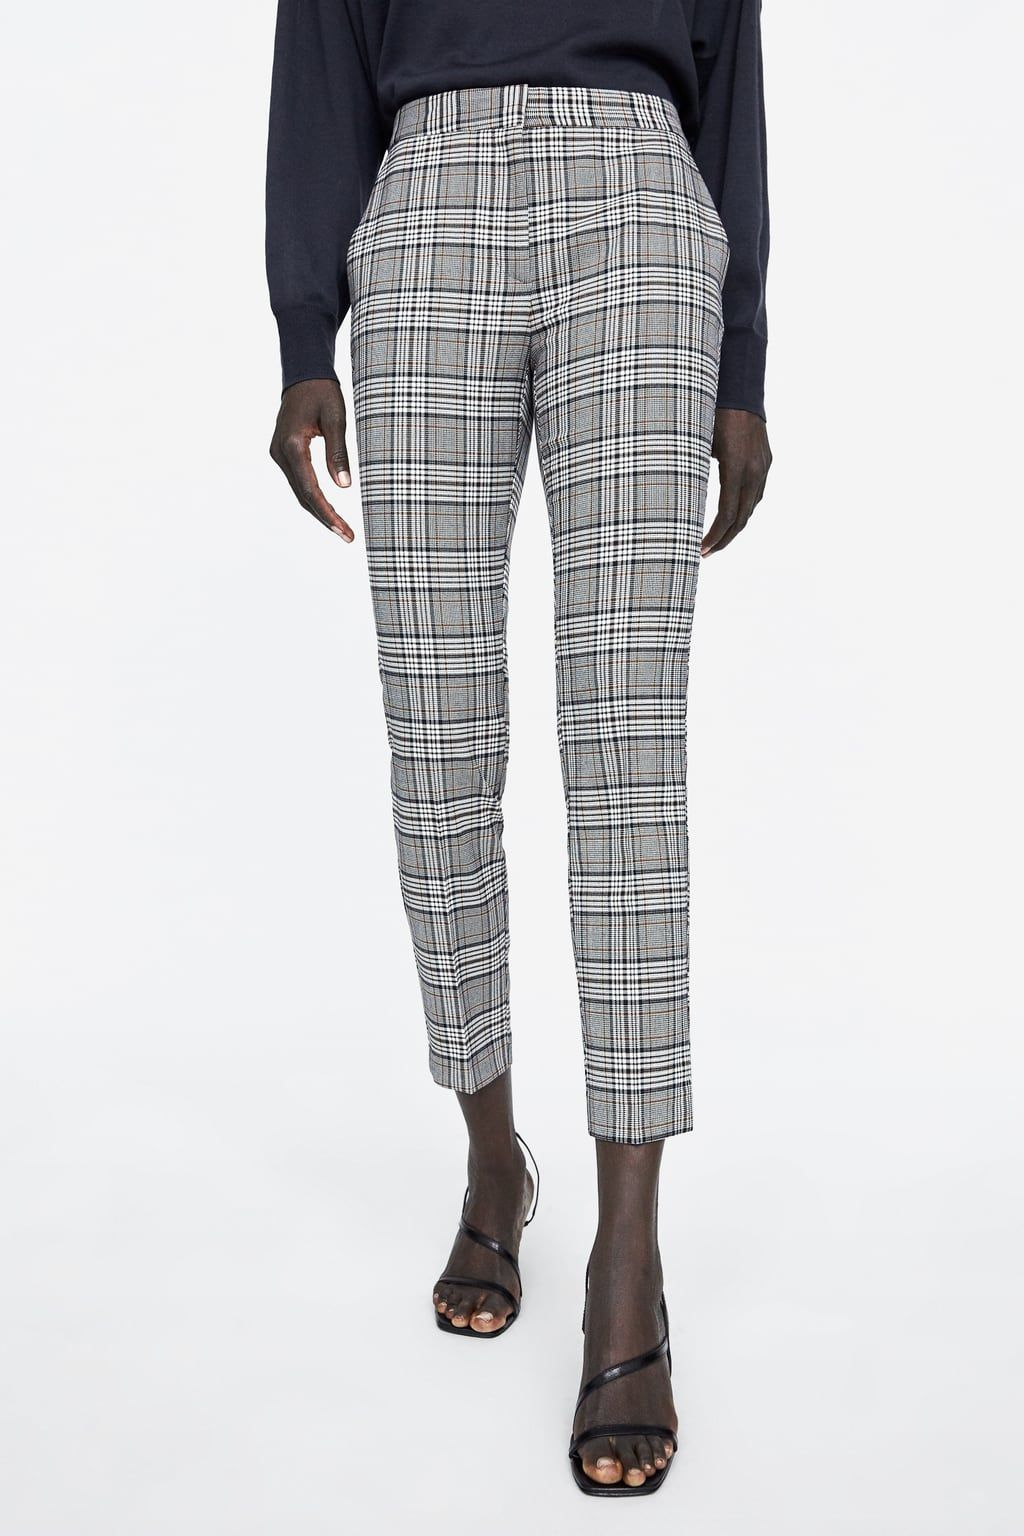 65abe198 Check skinny trousers in 2019   Mum holliers   Pants, Trousers ...